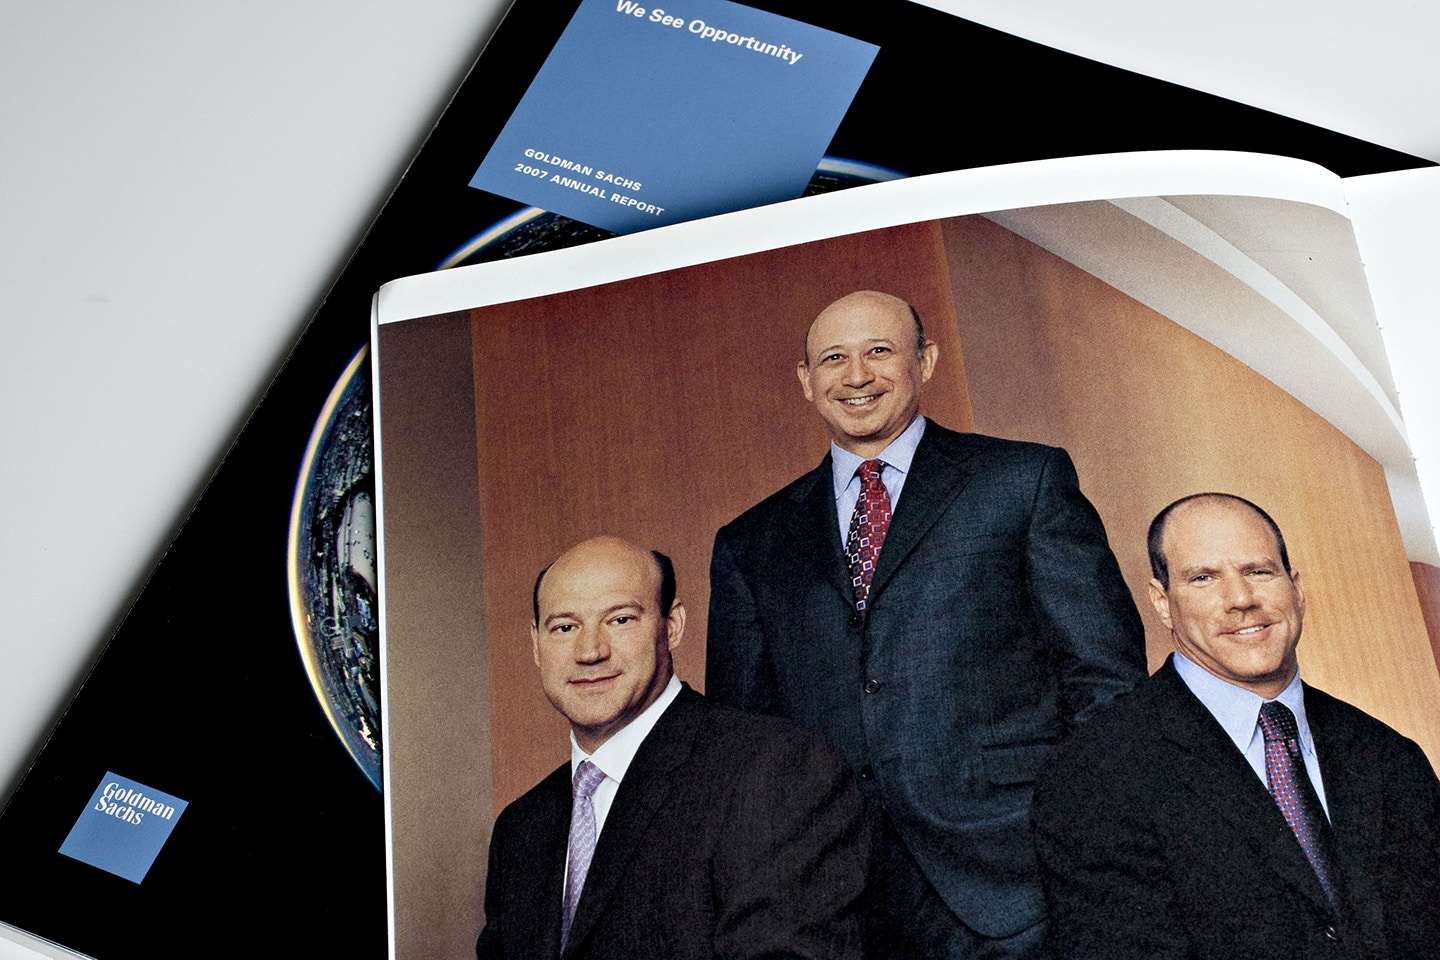 UNITED STATES - JUNE 16:  The Goldman Sachs Group Inc. executives, from right, Gary Cohn, president and co-chief operating officer, Lloyd Blankfein, chairman and chief executive officer, and Jon Winkelreid, president and co-chief operating officer, appear in a 2006 annual report arranged for a photograph in New York, U.S., on Monday, June 16, 2008. A 2007 annual report sits at left.  (Photo by Daniel Acker/Bloomberg via Getty Images)